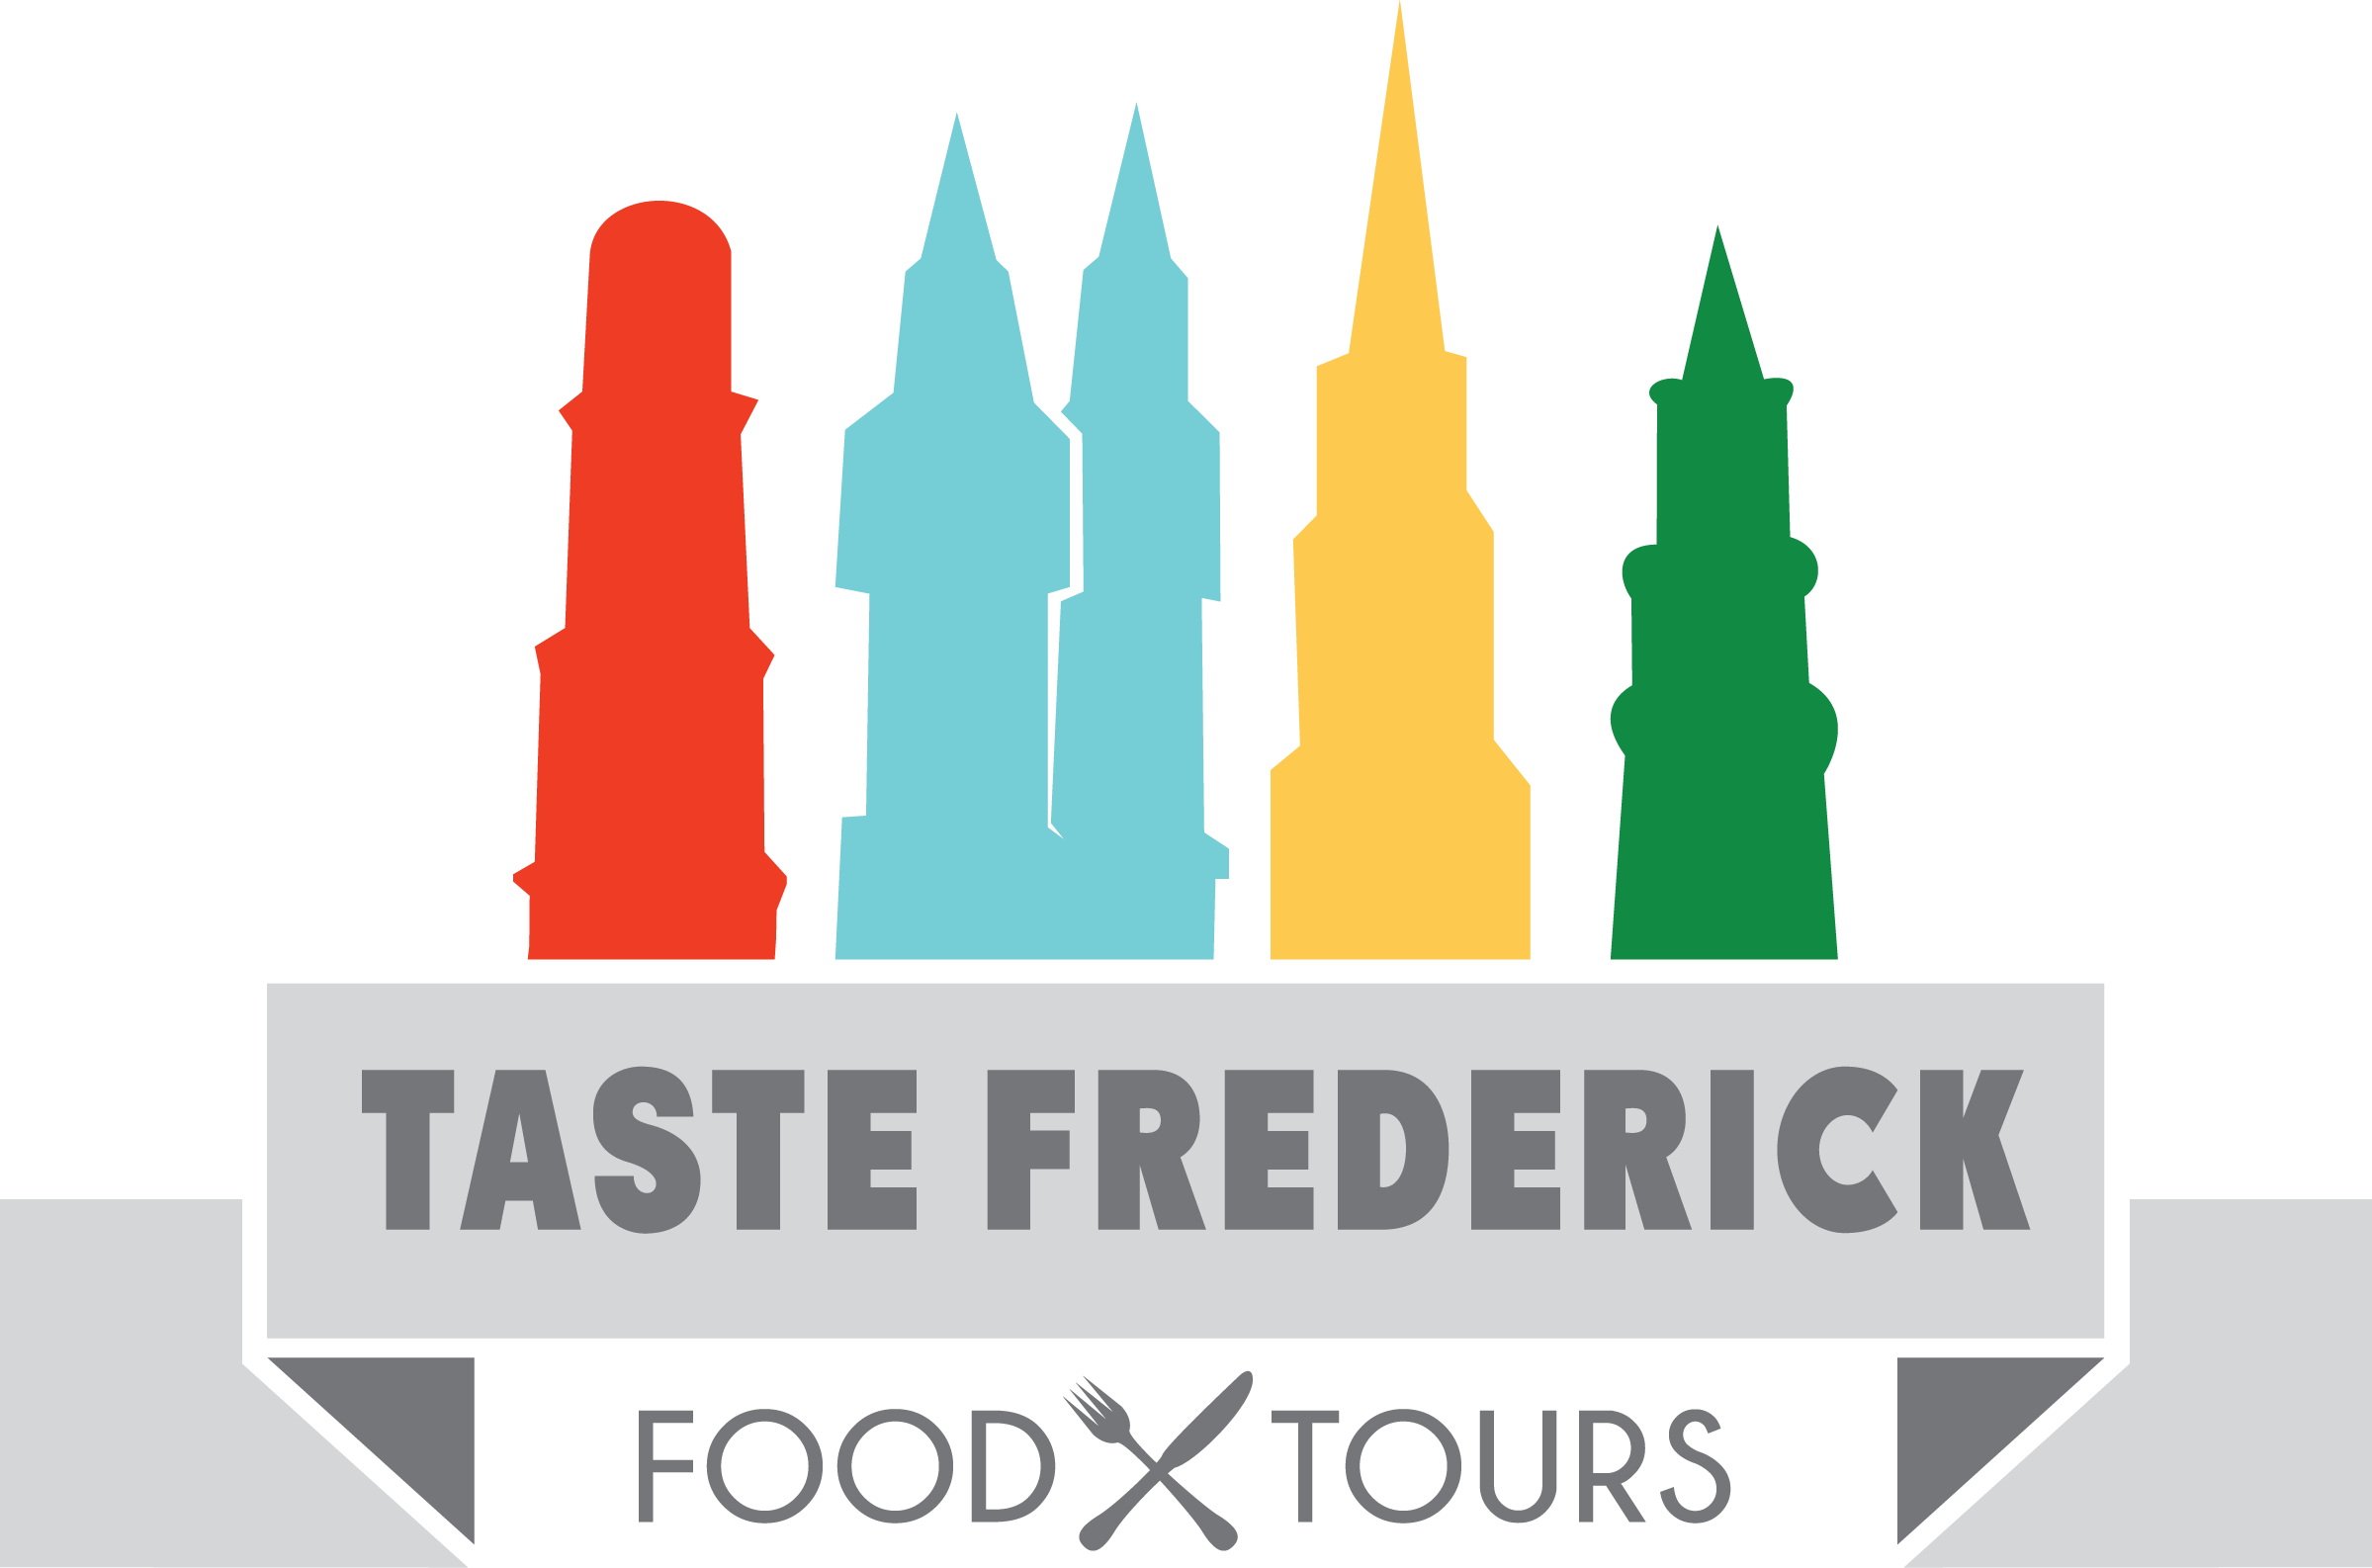 Taste Frederick Food Tour logo